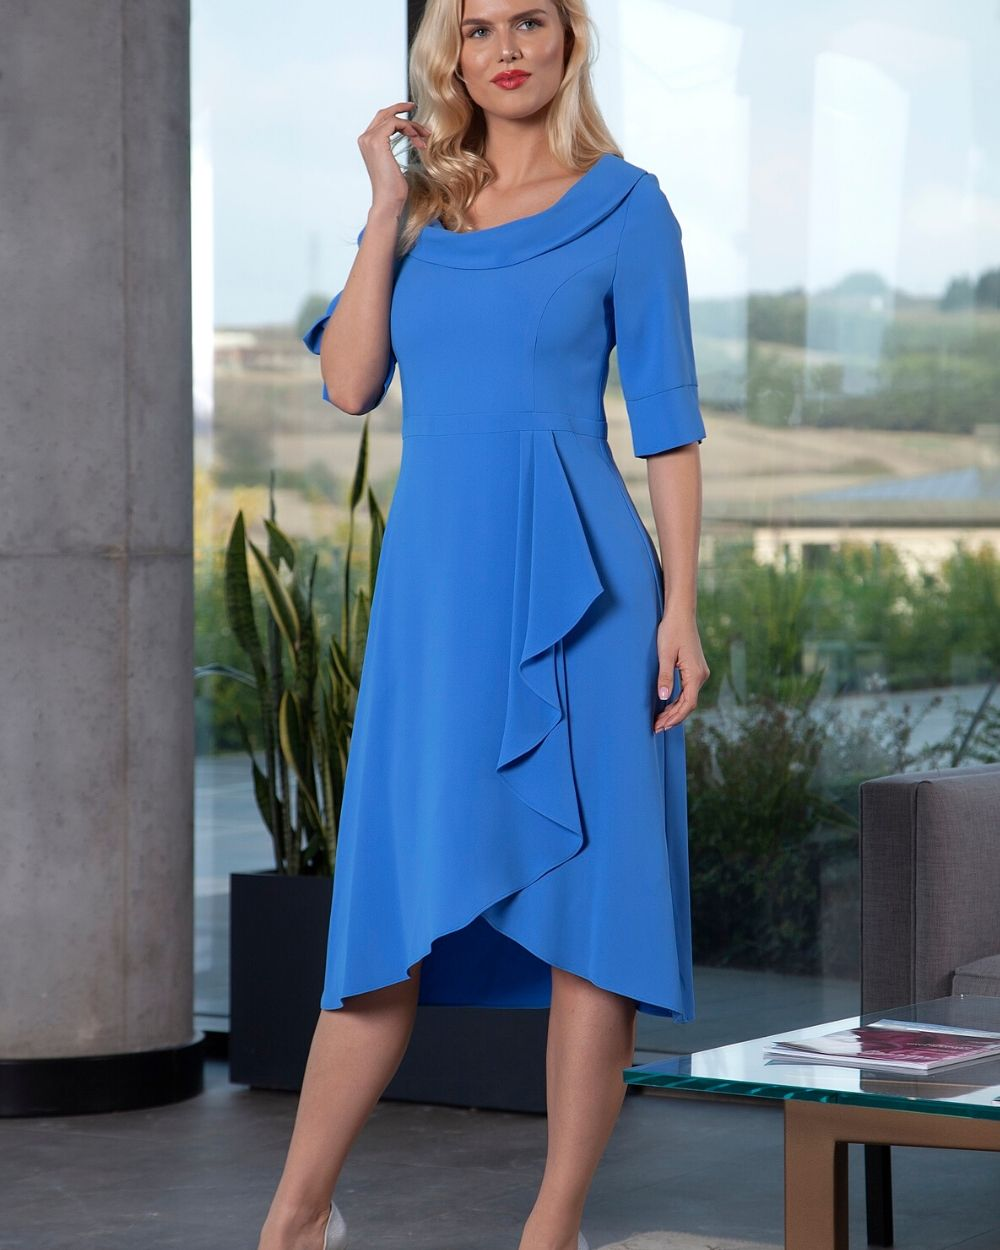 Lizabella Royal Blue Dress 2071 - Snooty Frox